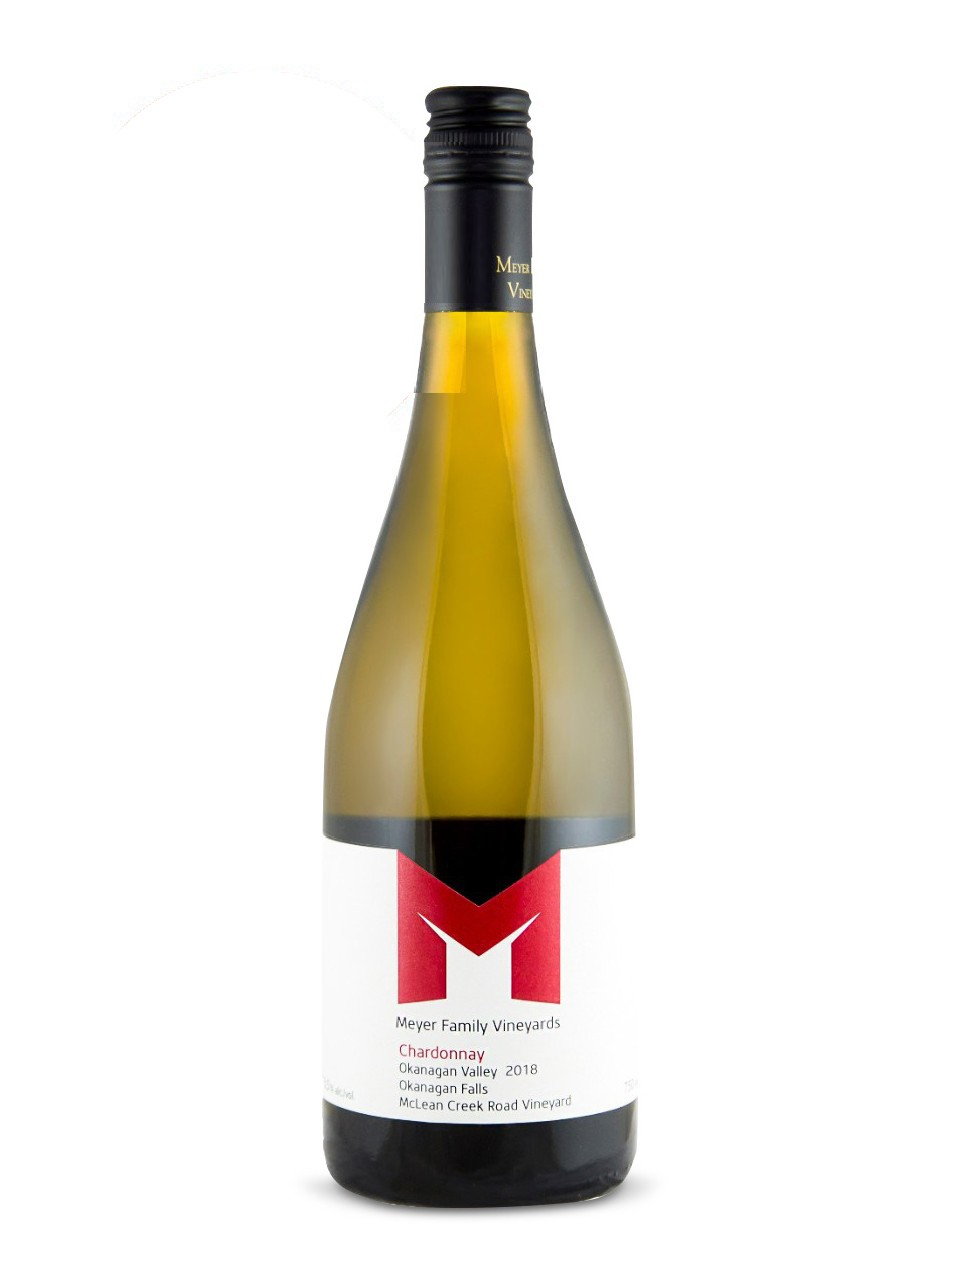 Meyer Family McLean Creek Road Chardonnay 2018 from LCBO